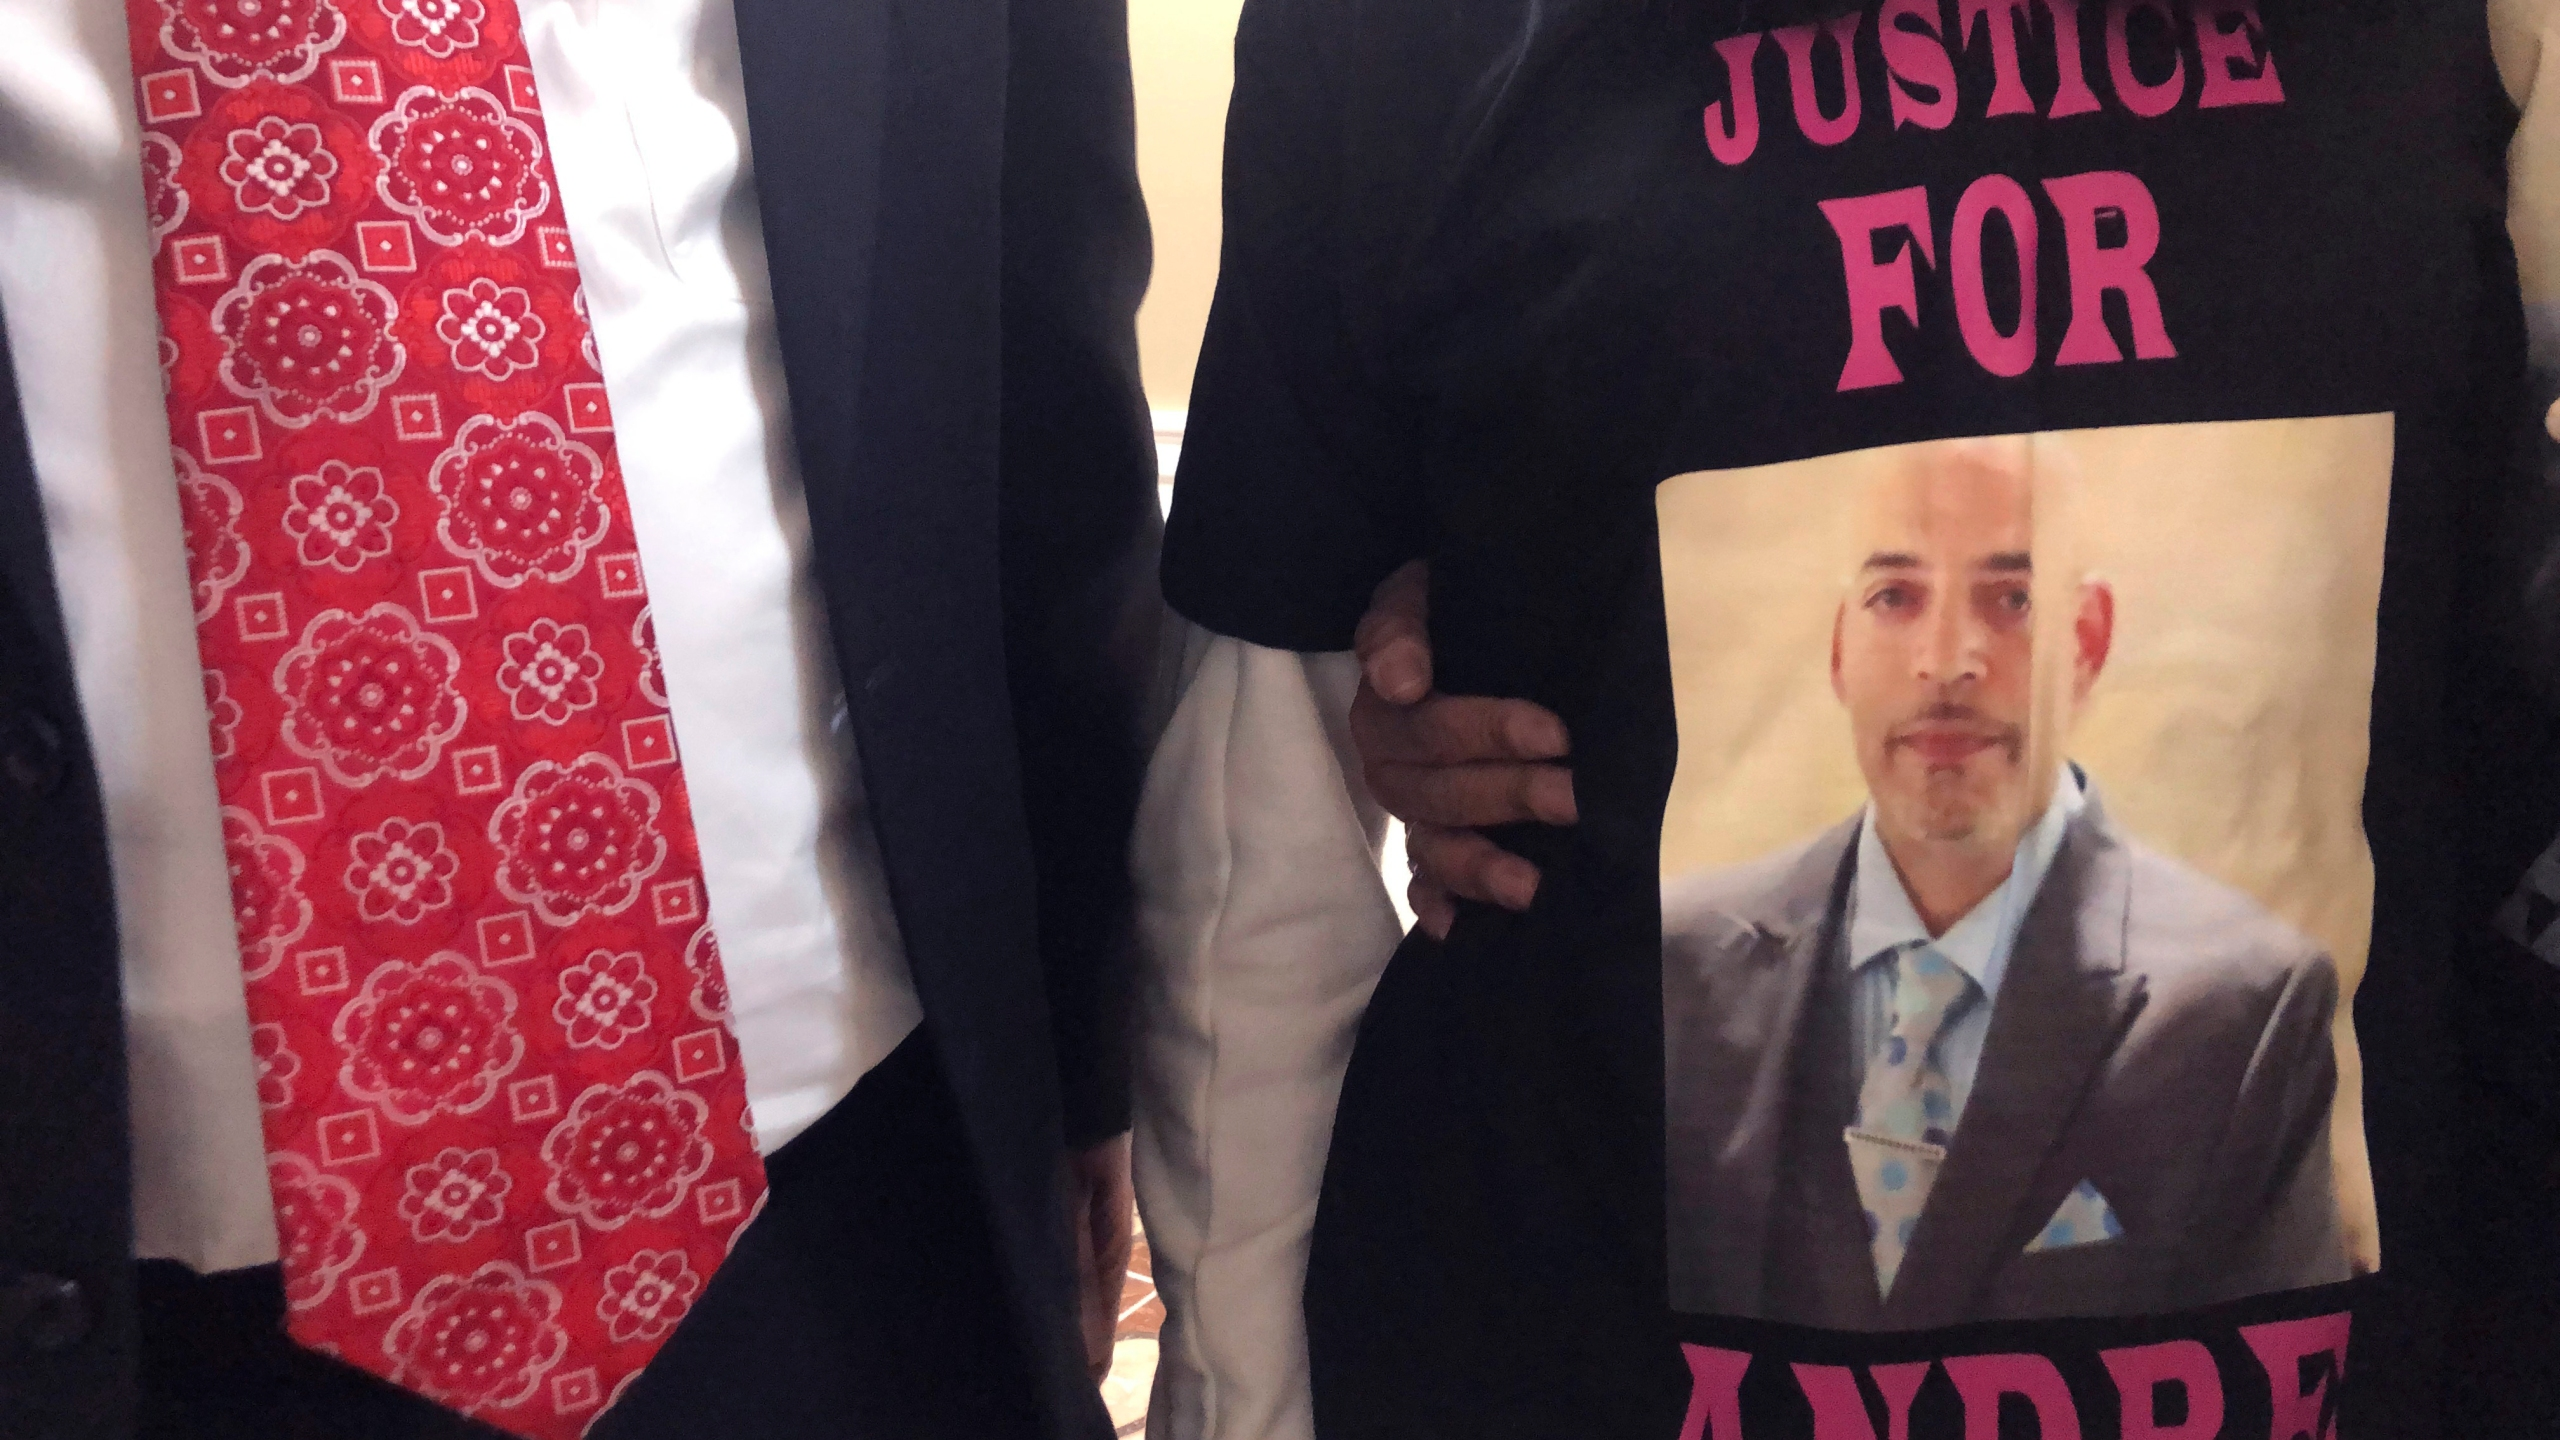 Andre Hill, fatally shot by Columbus police on Dec. 22, 2020 is memorialized on a shirt worn by his daughter, Karissa Hill, on Thursday, Dec. 31, 2020, in Columbus, Ohio. (Andrew Welsh-Huggins/Associated Press)